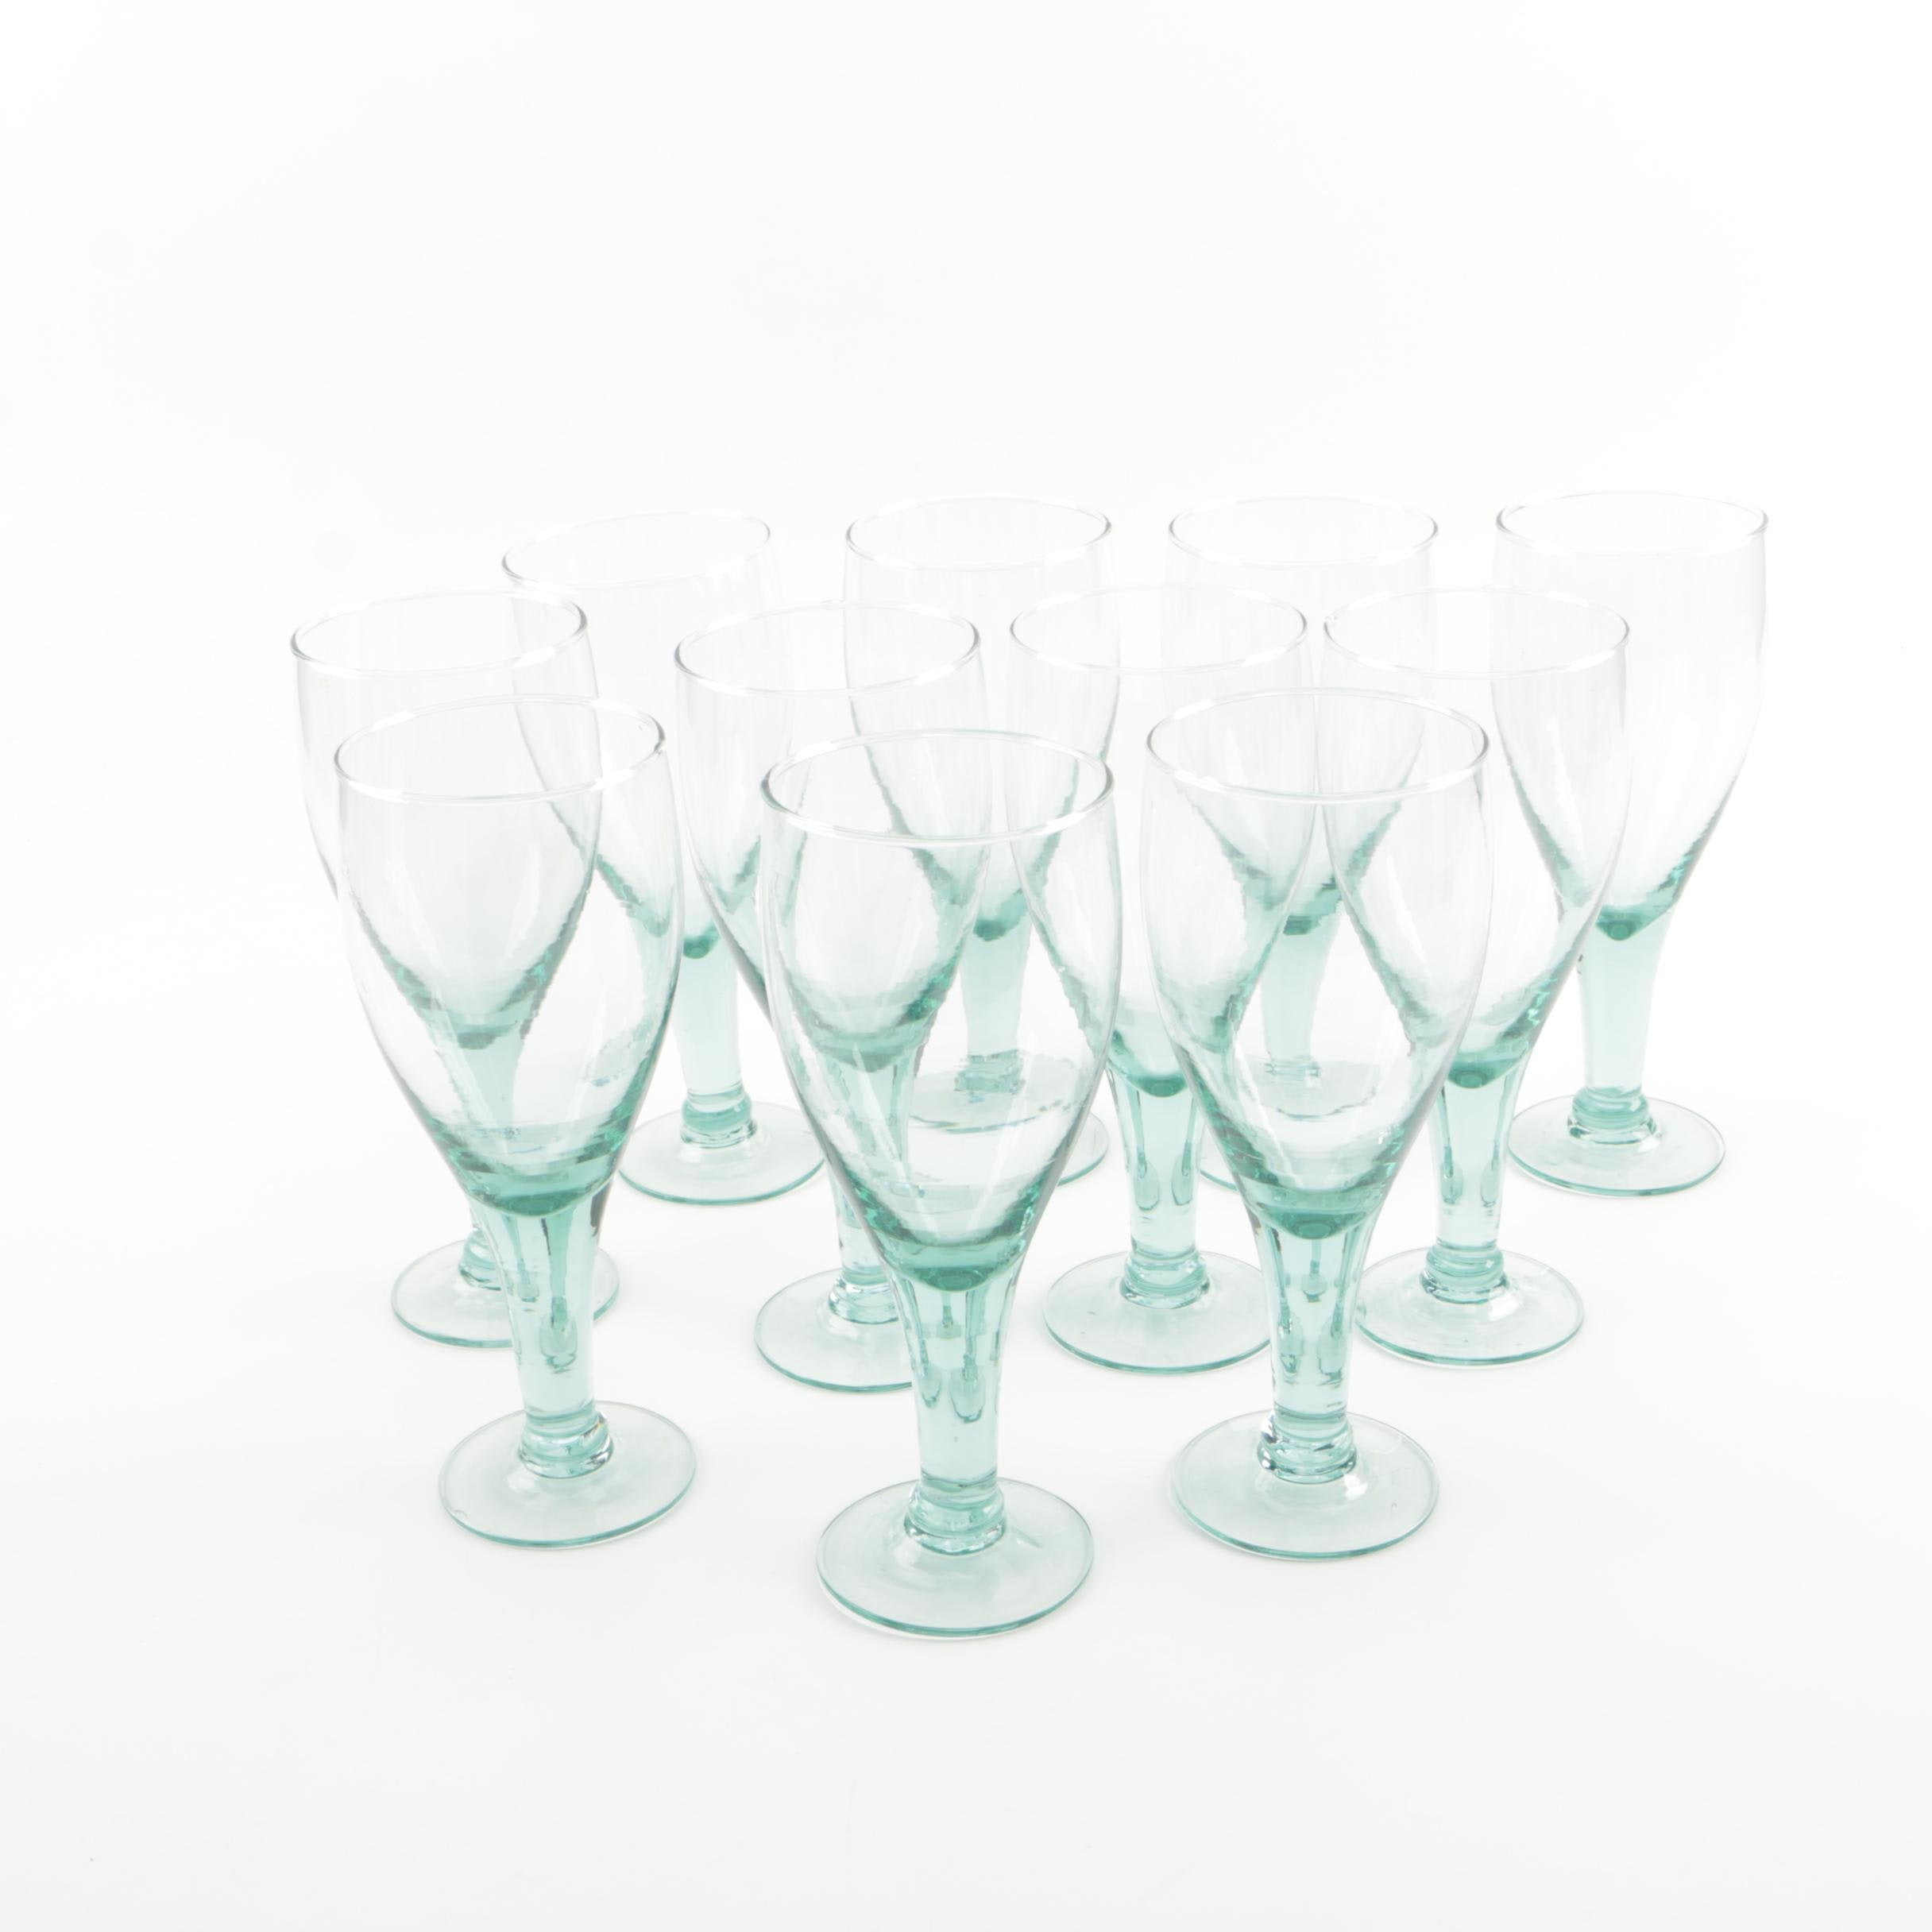 Set of Eleven Hand-Blown Glass Water Glasses